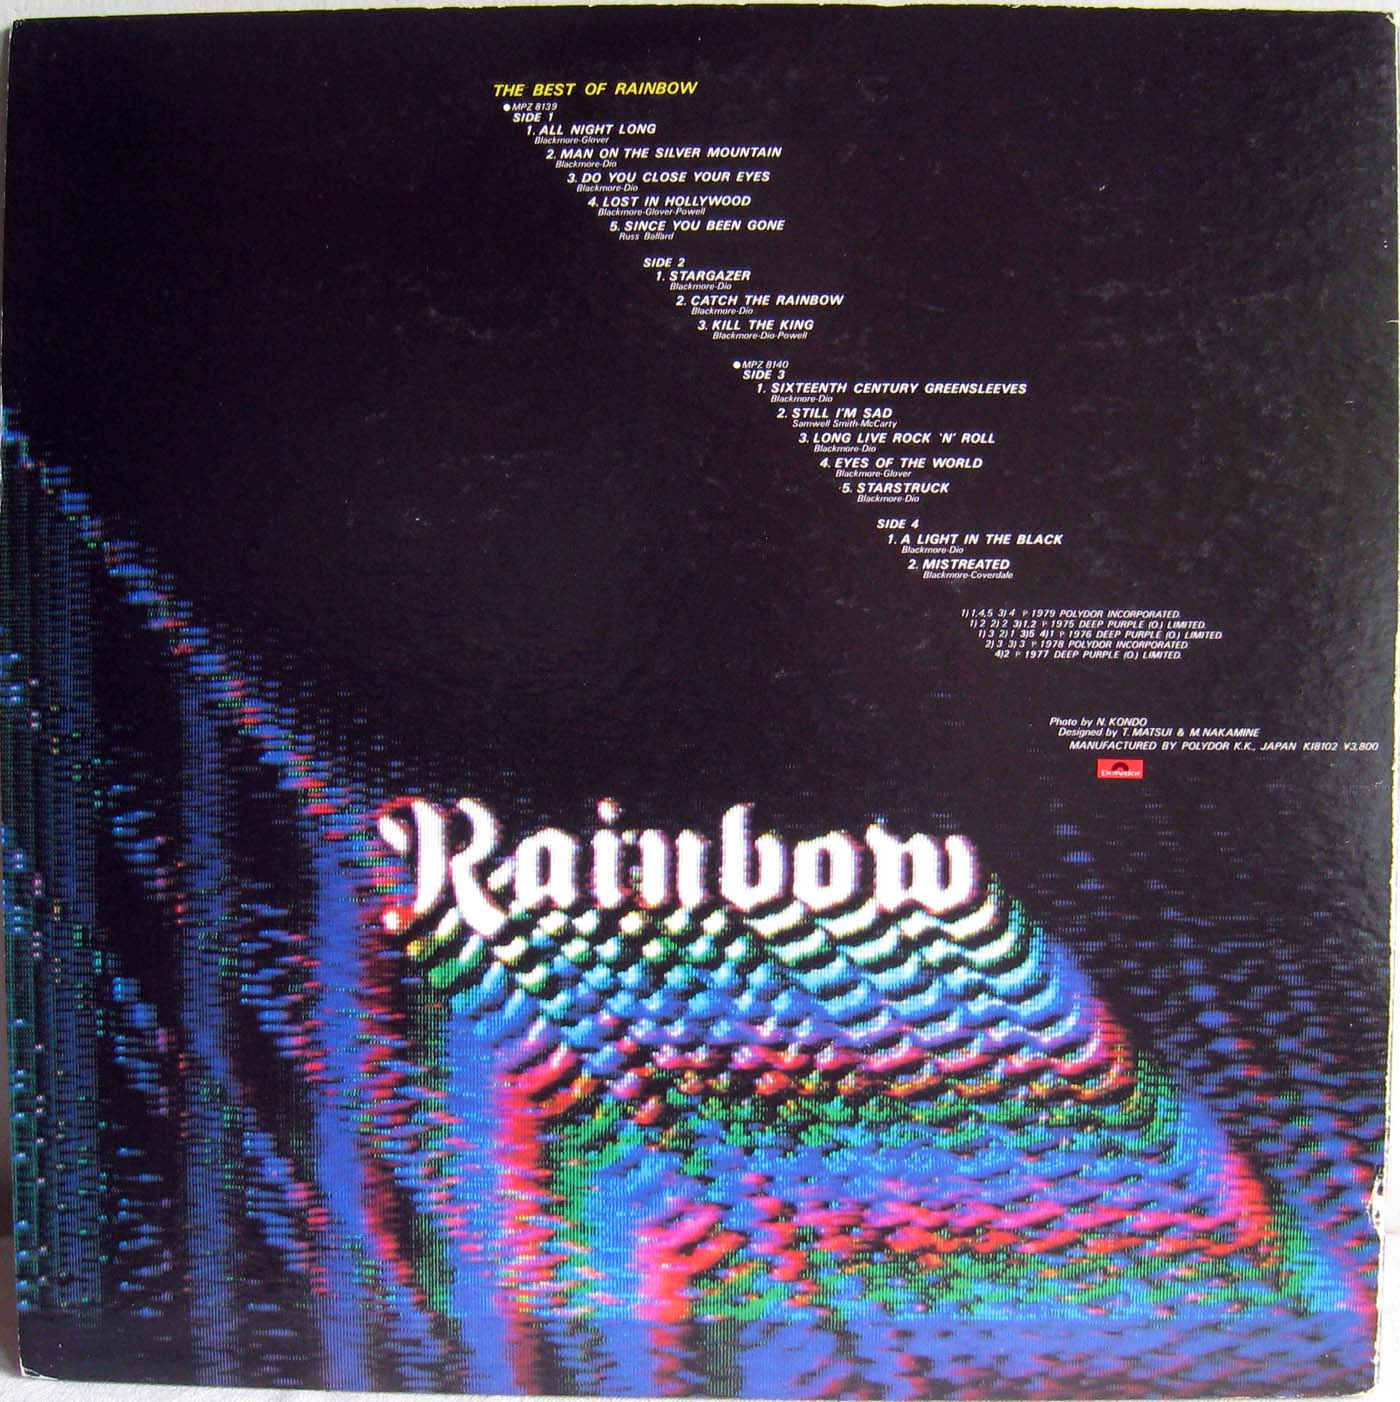 deep purple rainbow staarqazer flac